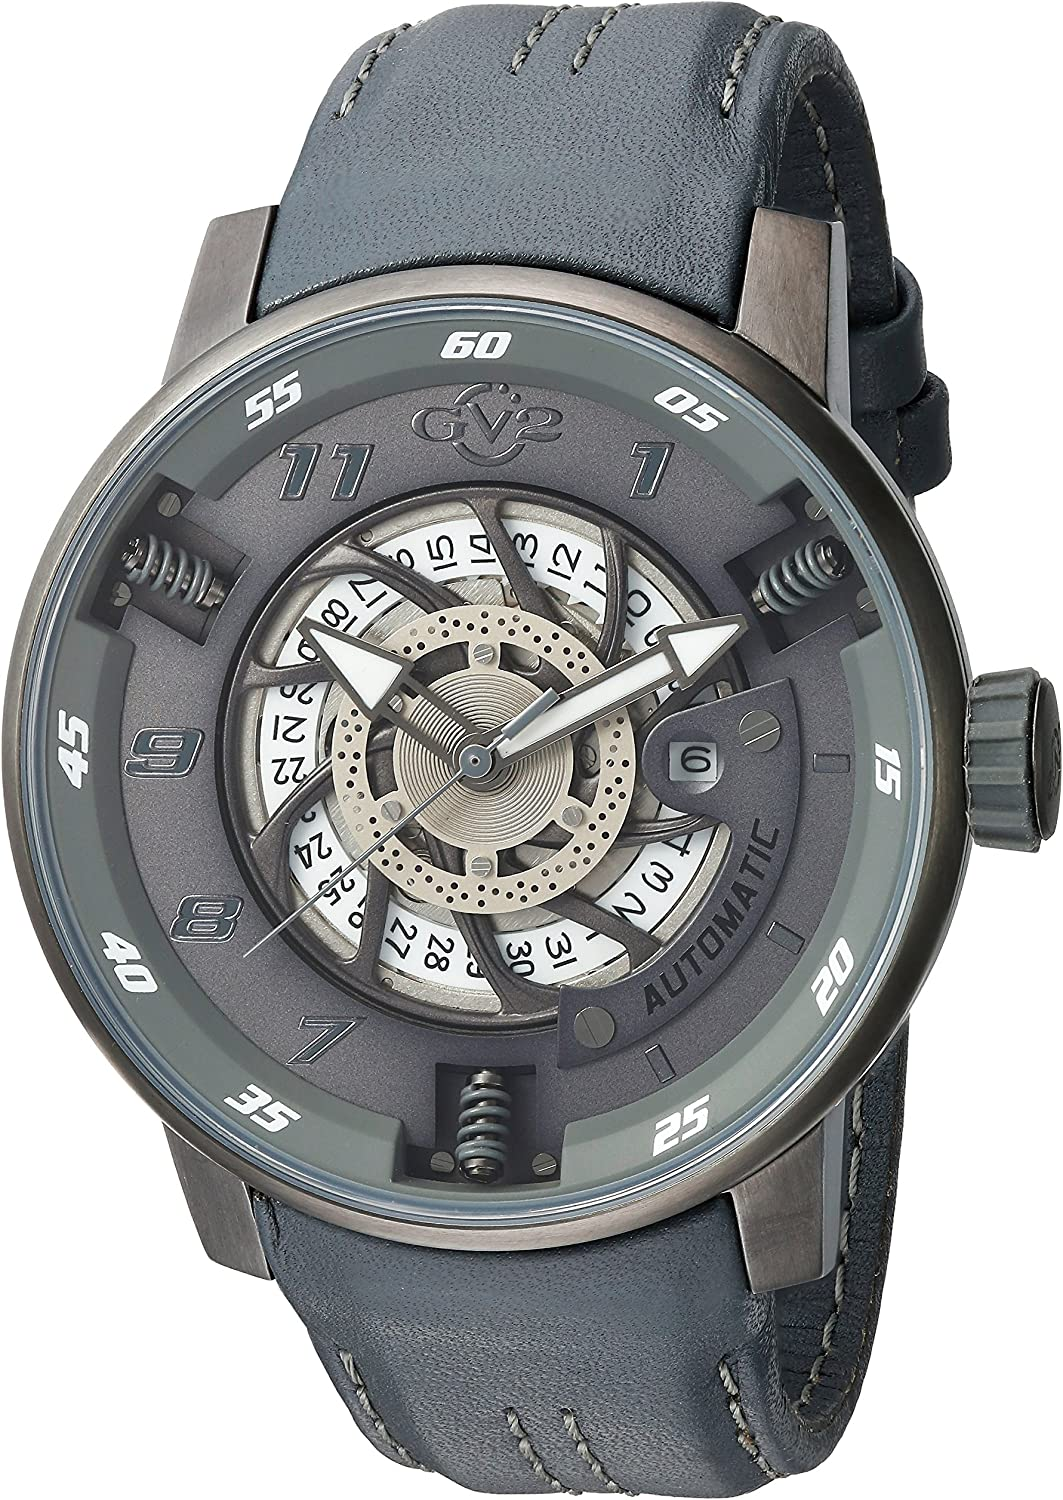 GV2 by Gevril Motorcycle Sport Mens Swiss Automatic Grey Leather Strap Watch, Model 1303